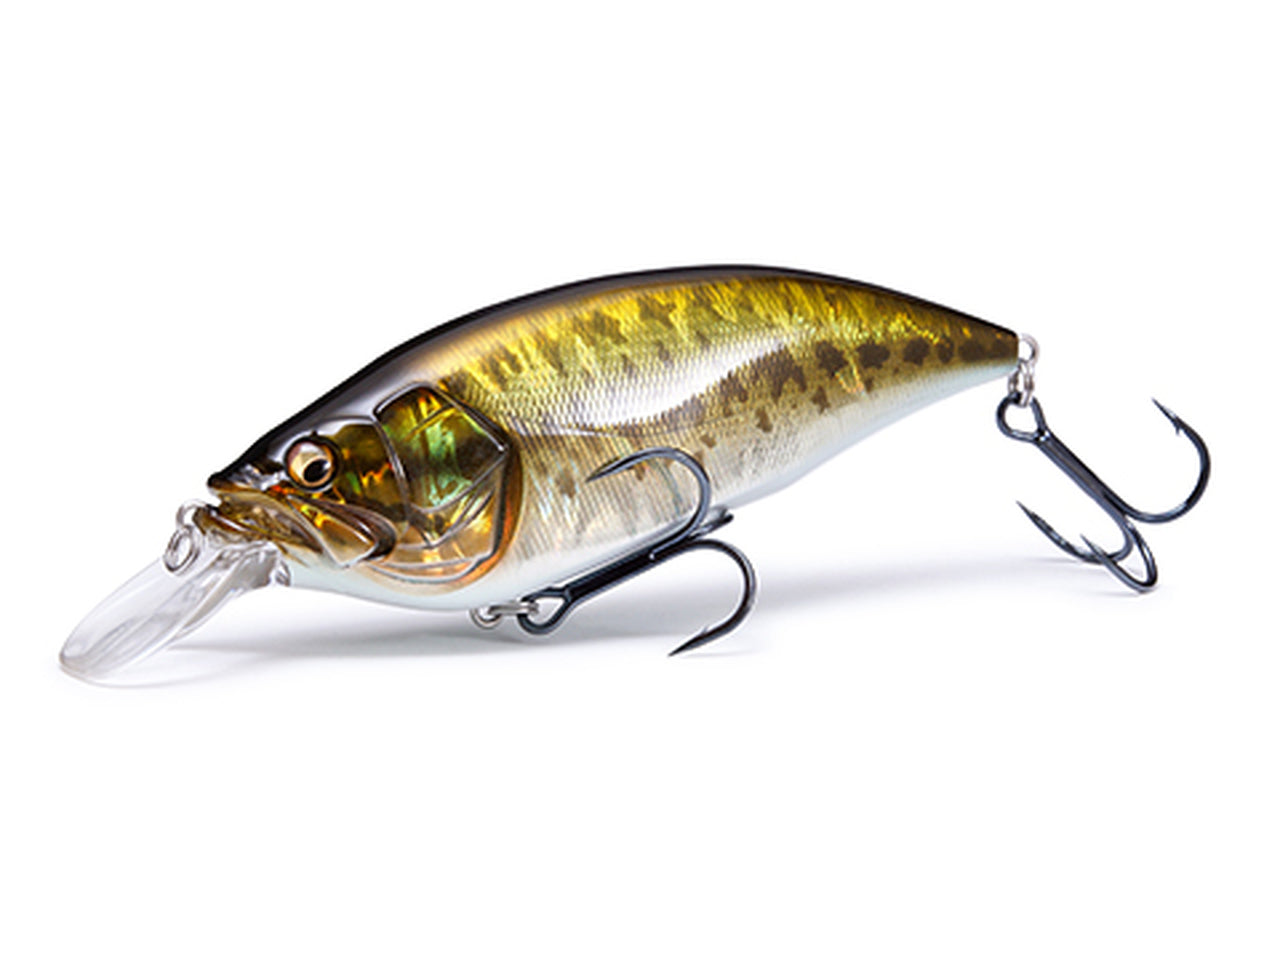 Megabass Big-M 4.0 Hard Body Lure